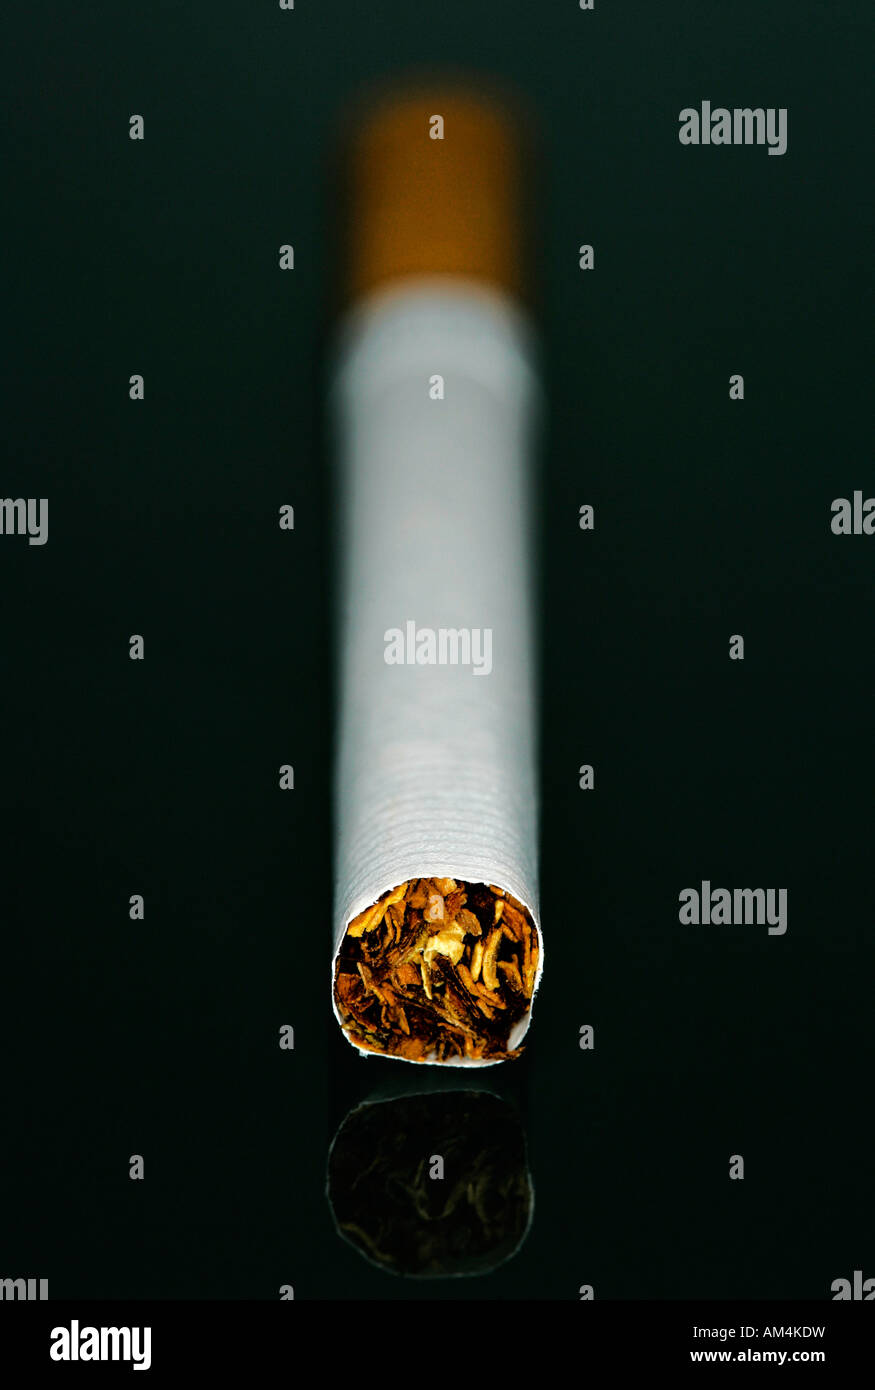 A cigarette - Stock Image